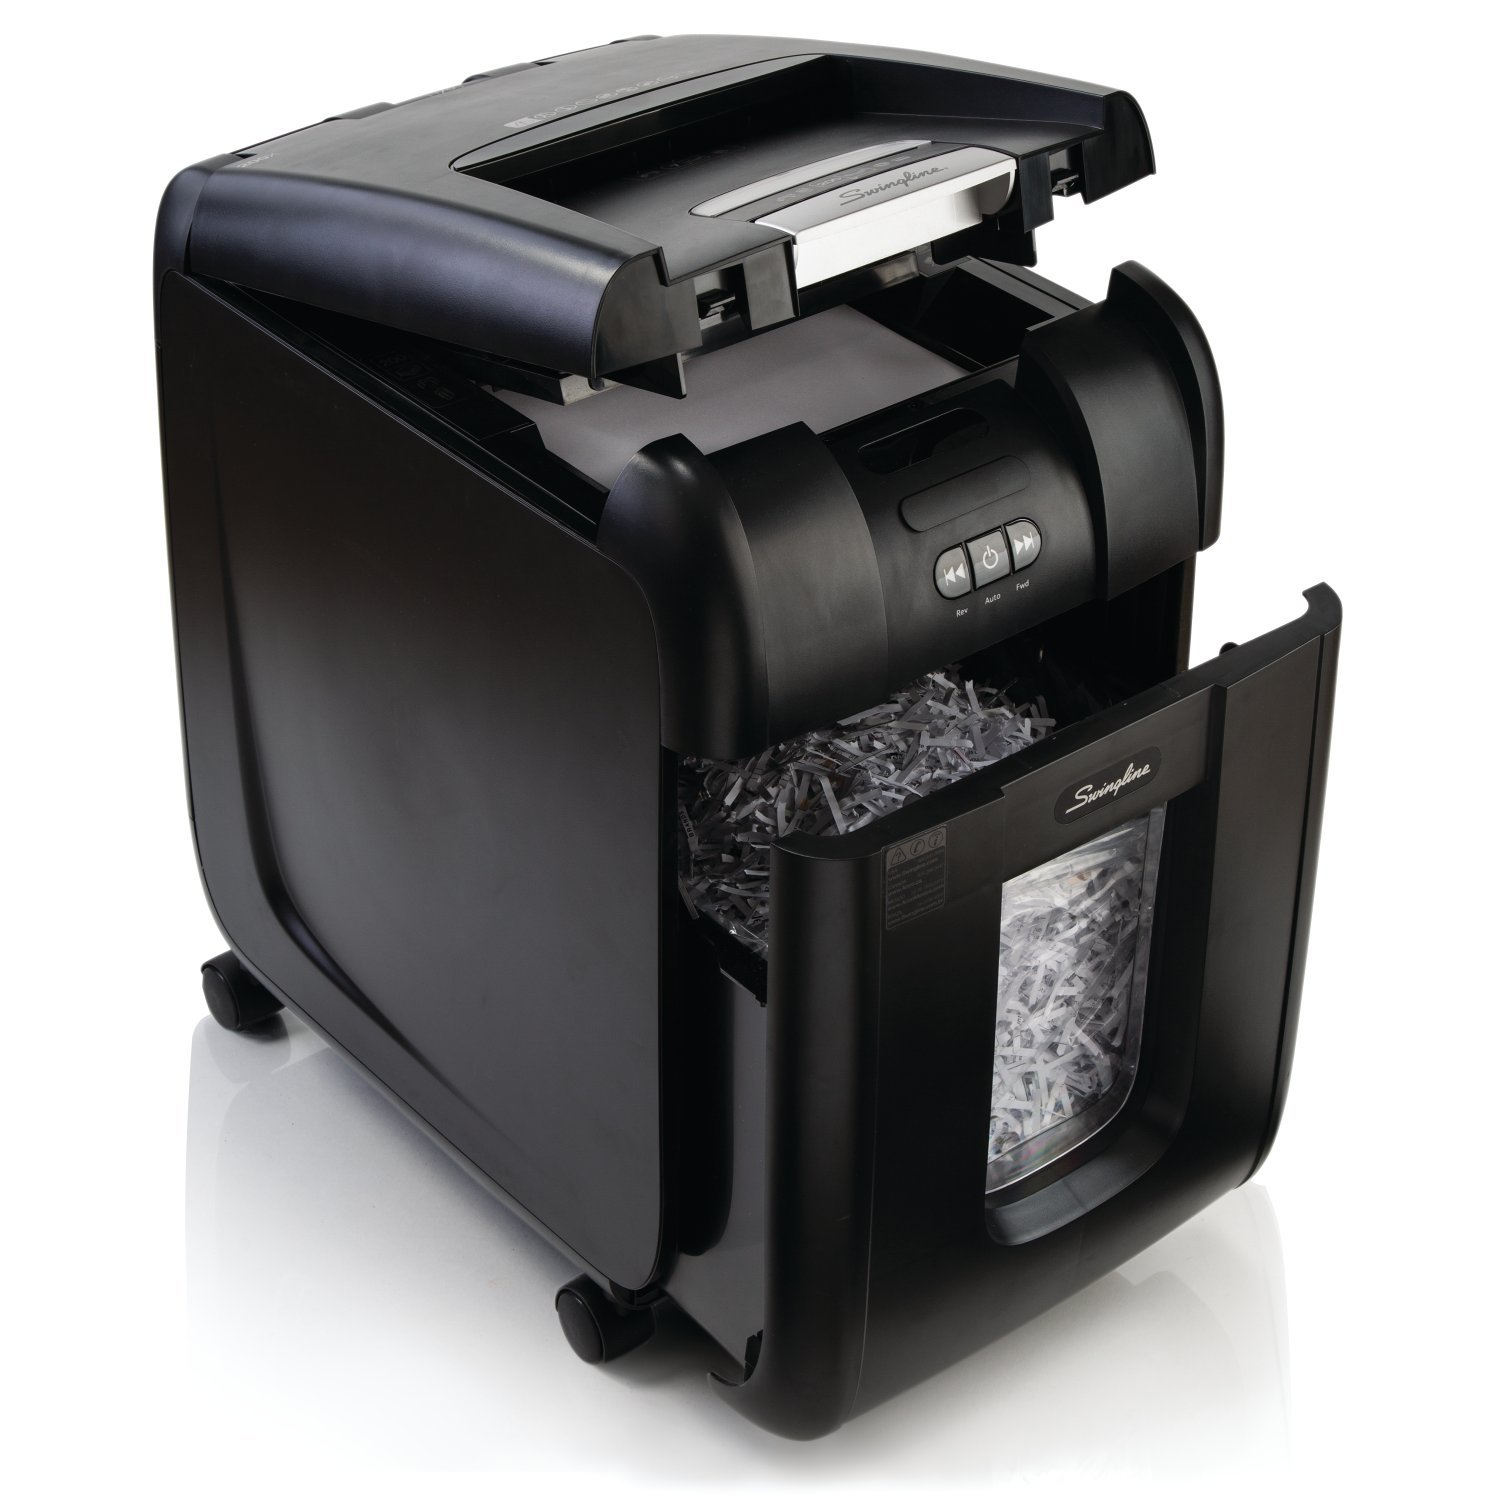 Swingline Paper Shredder, Auto Feed, 230 Sheet Capacity, Super Cross-Cut, 1-5 Users, Stack-and-Shred 230X (1757573)